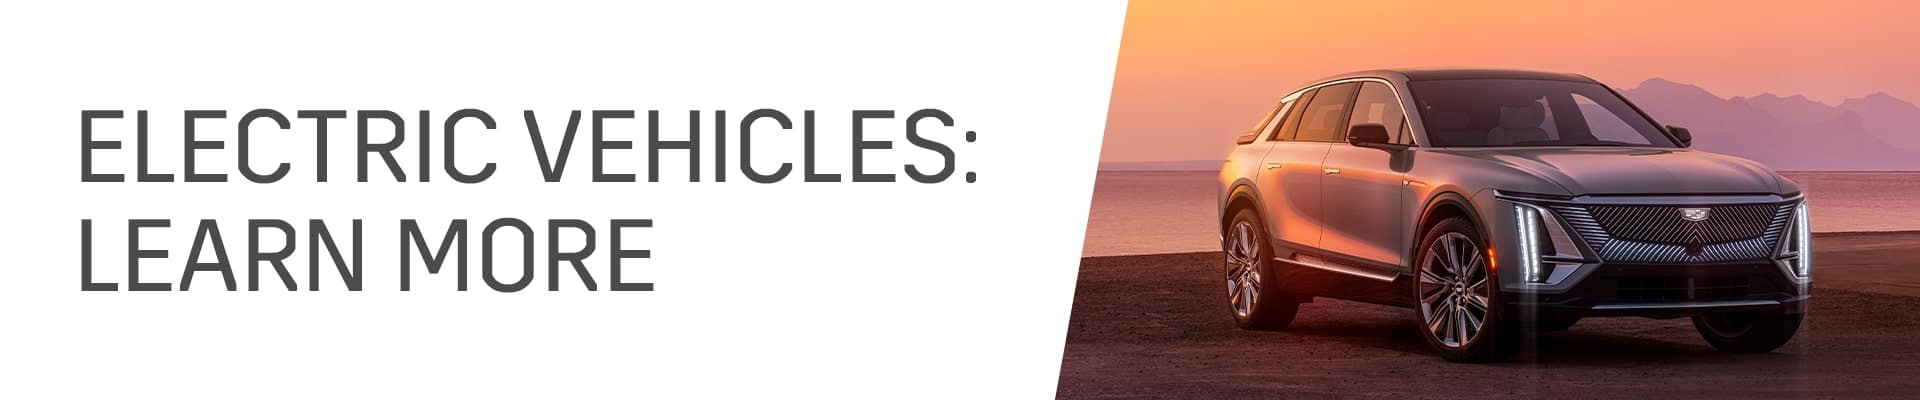 Electric Vehicles: Learn more at Patrick Cadillac